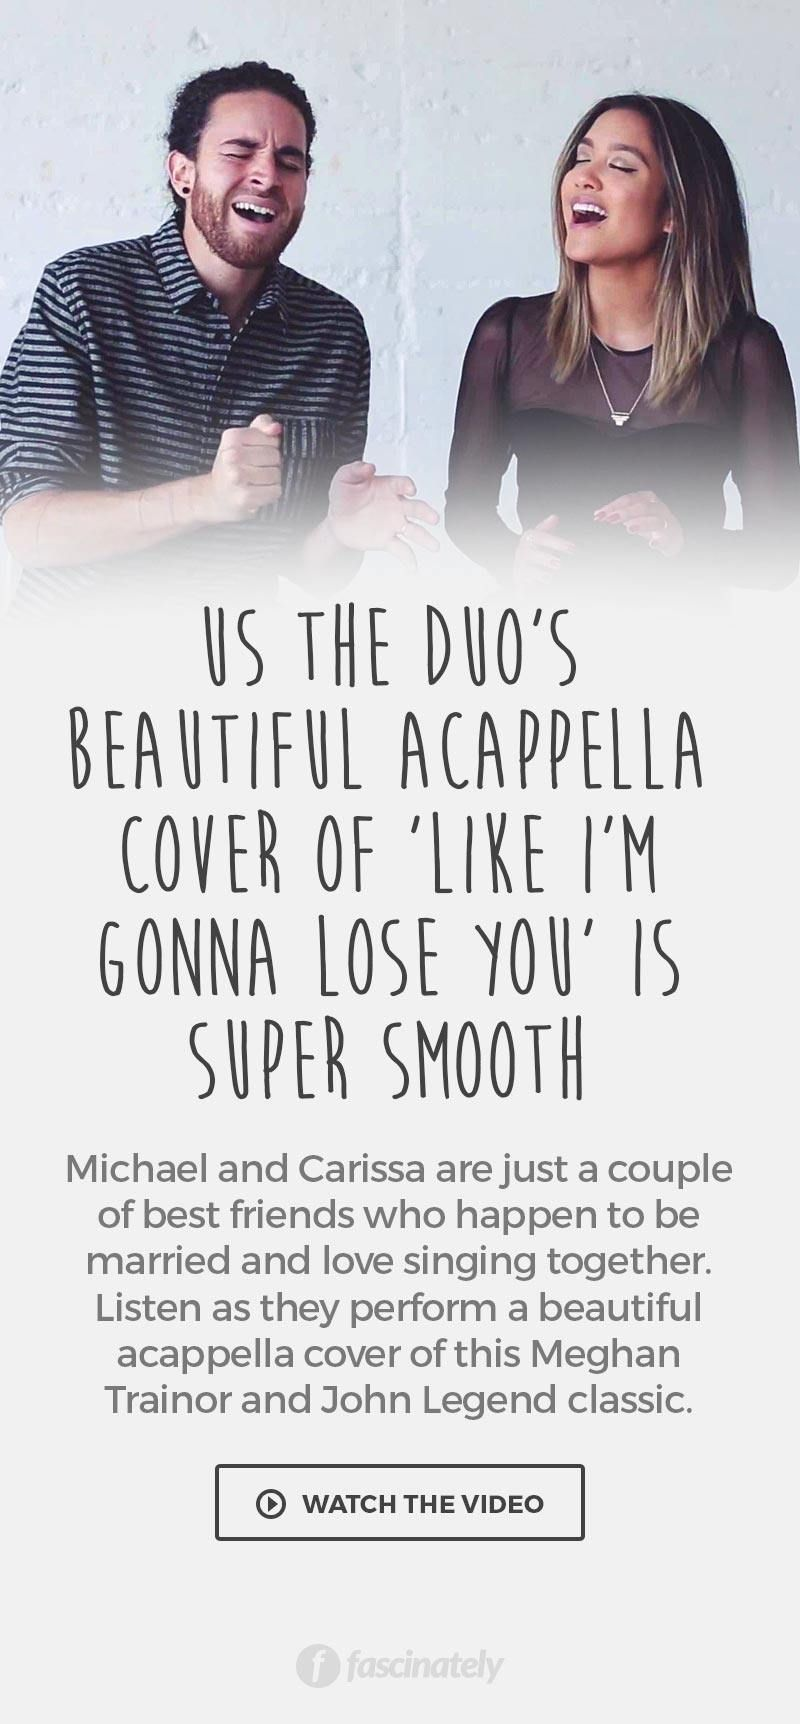 Us The Duo's Beautiful Acappella Cover of 'Like I'm Gonna Lose You' is Super Smooth